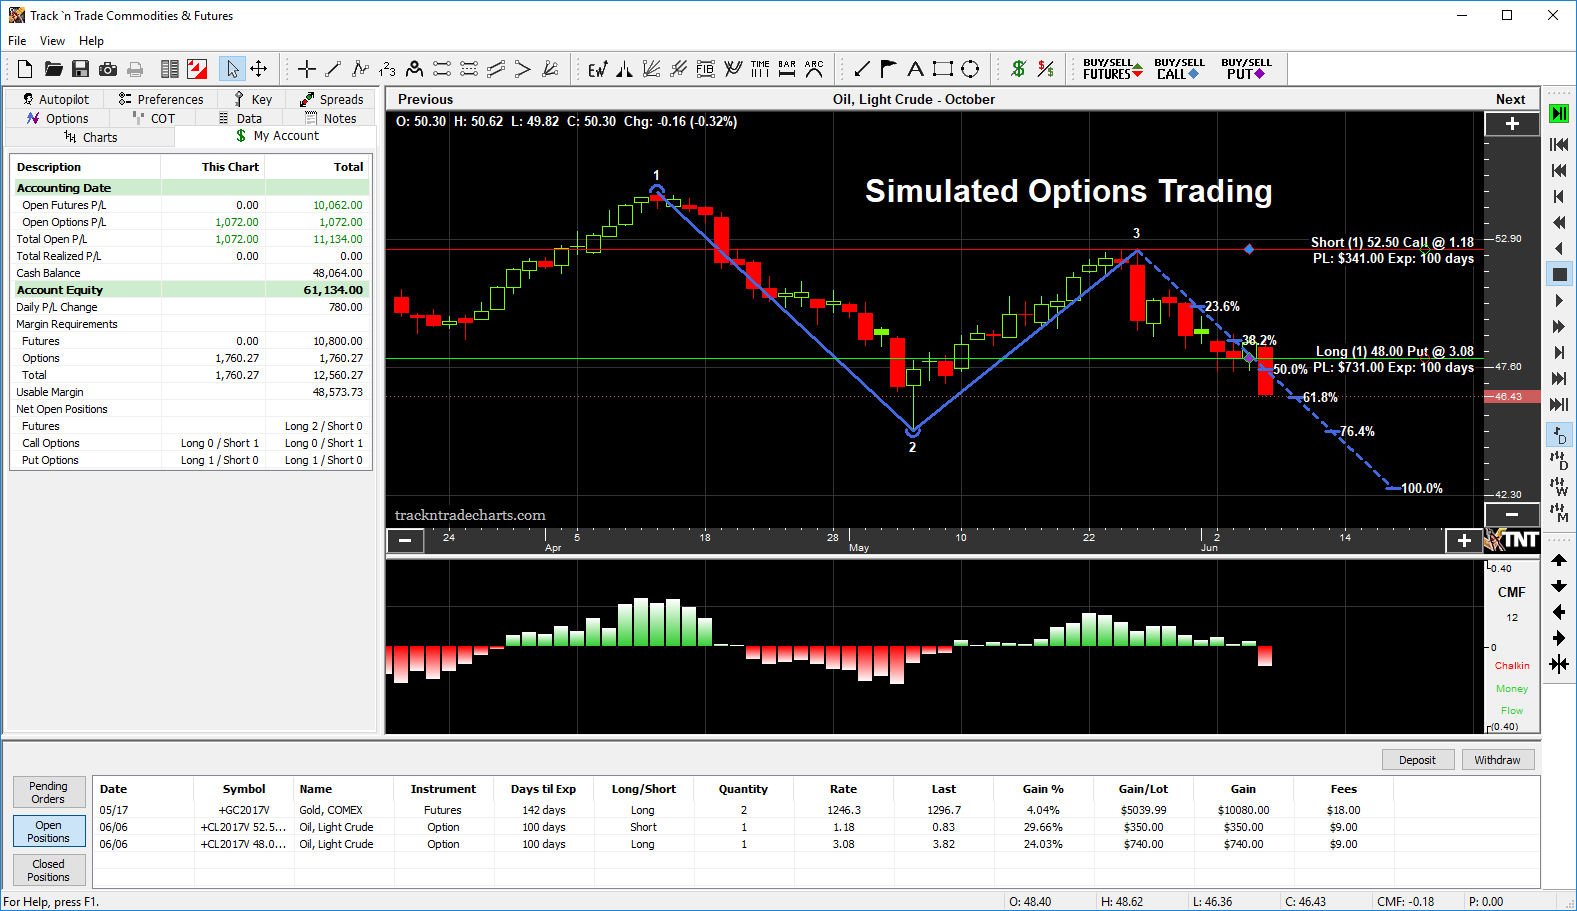 Perfect your options trading strategy with actual historical market data